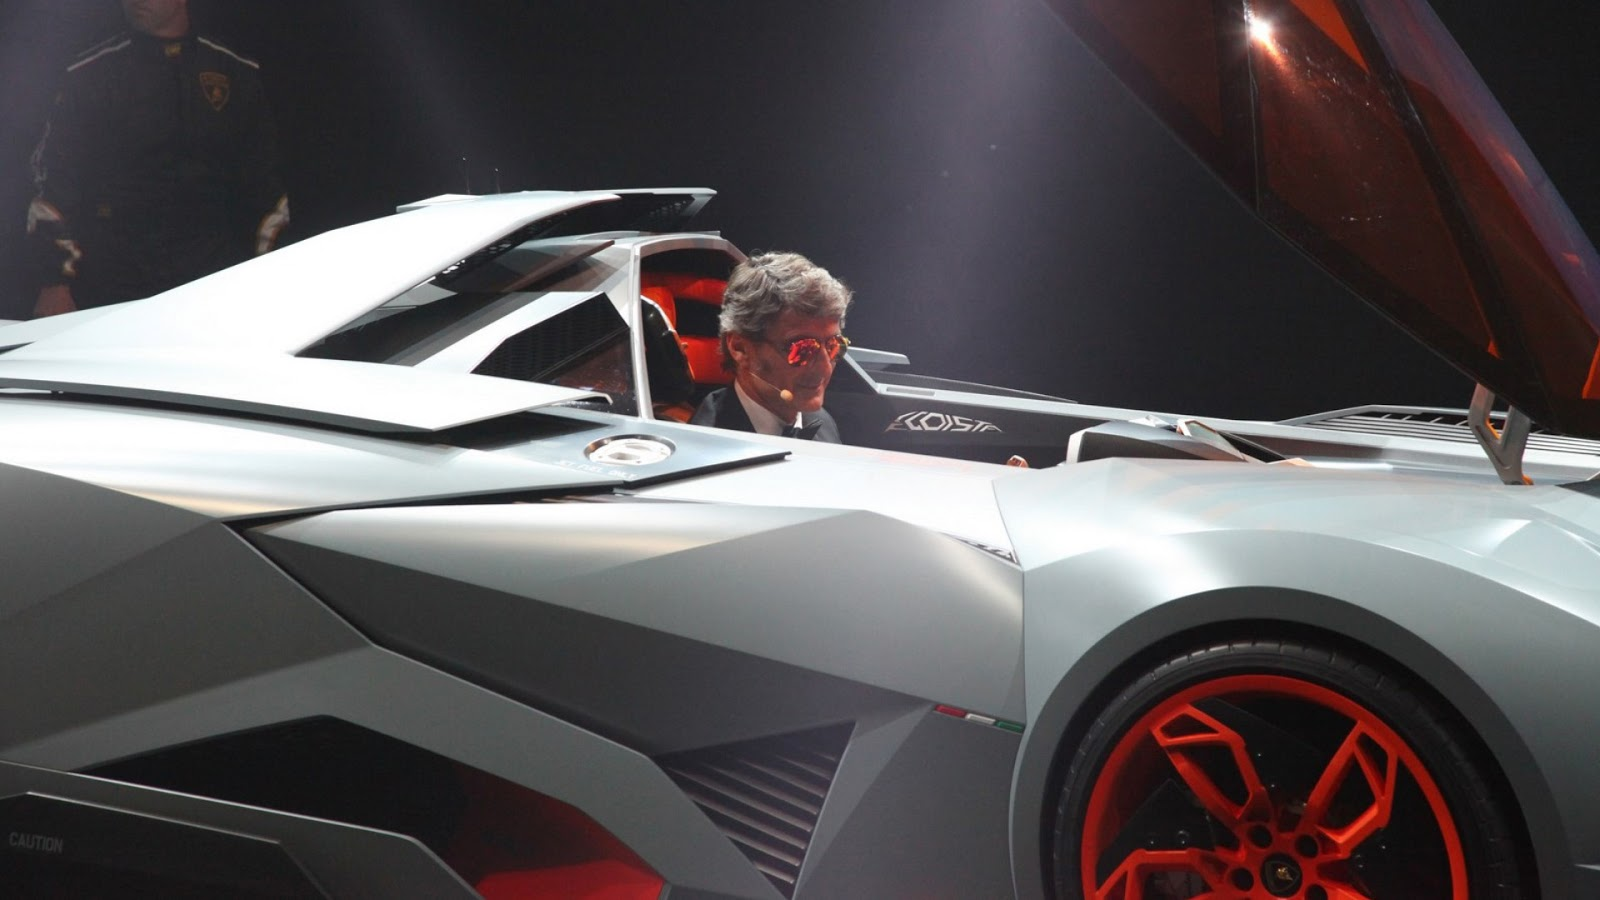 Lamborghini Egoista Concept Car Wallpapers | HD Wallpapers ...